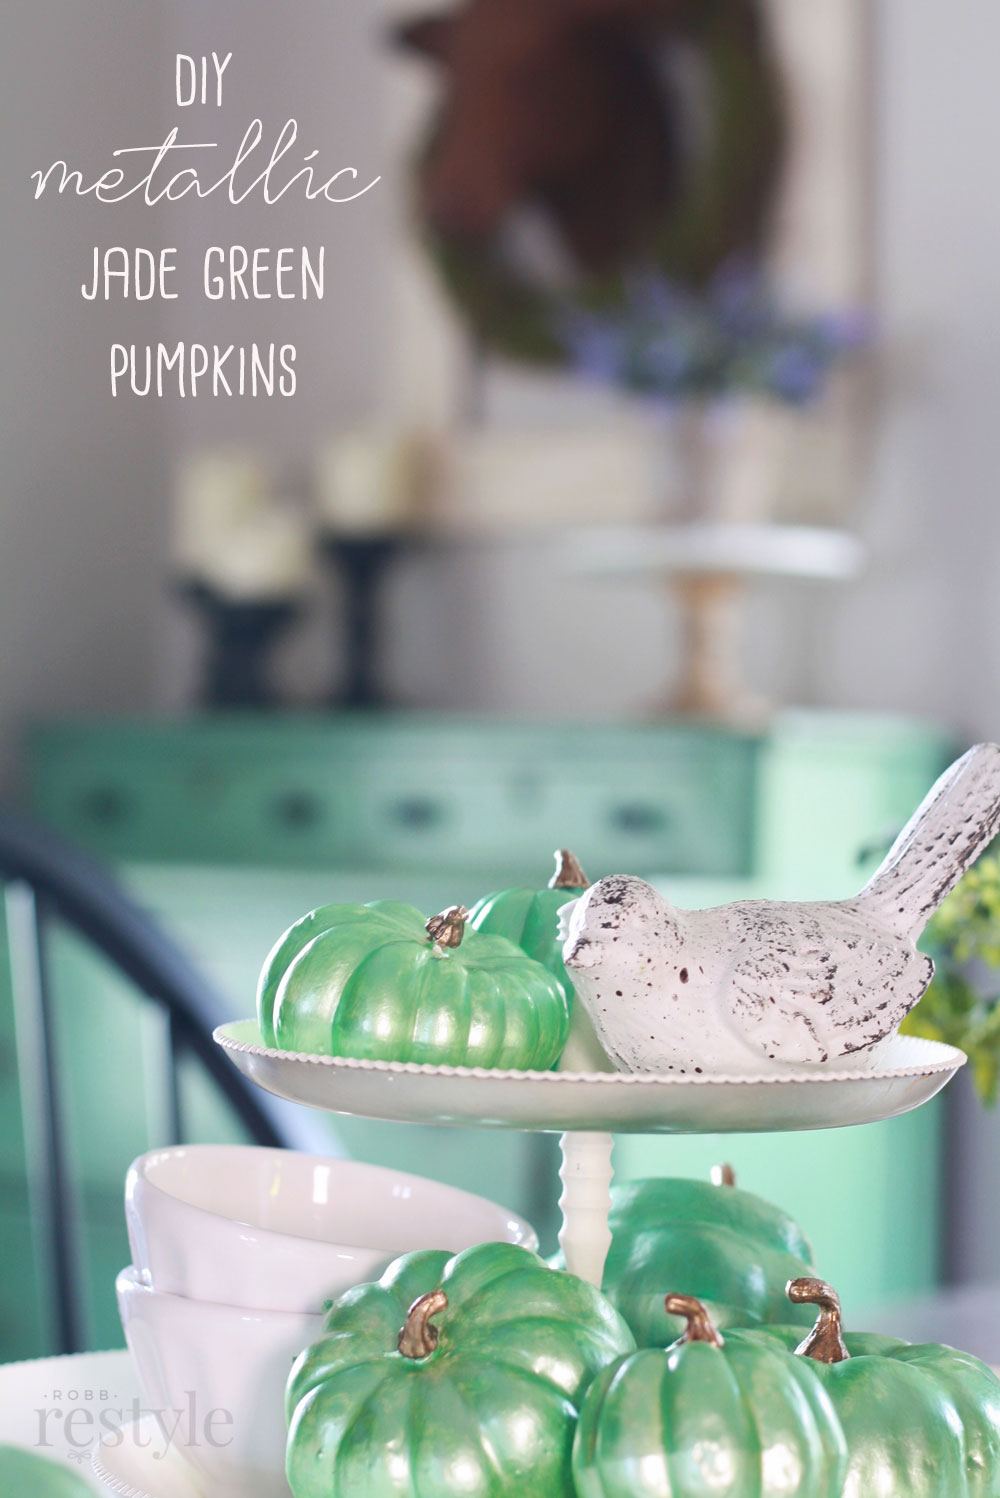 DIY Metallic Jade Green Pumpkins